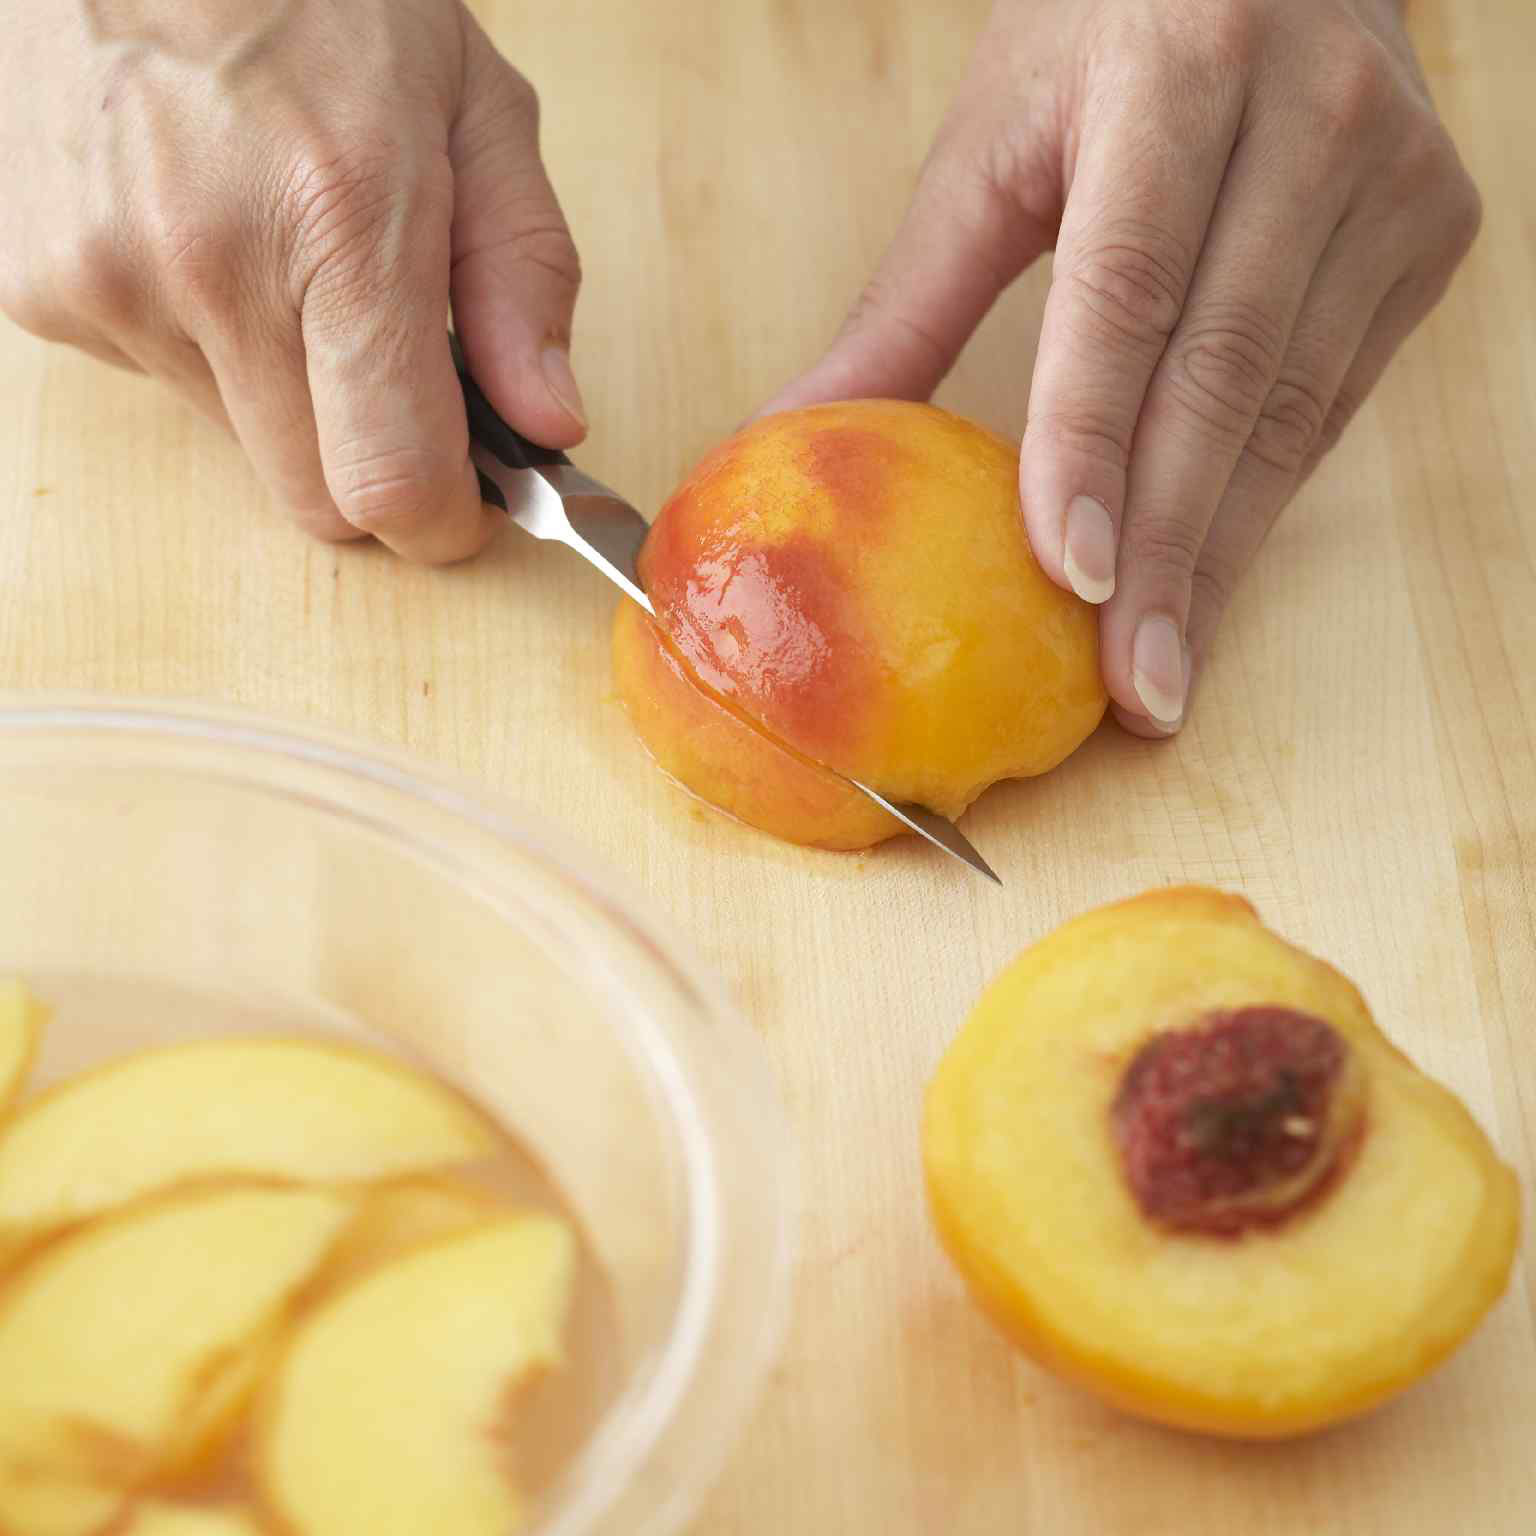 Person slicing peeled peach